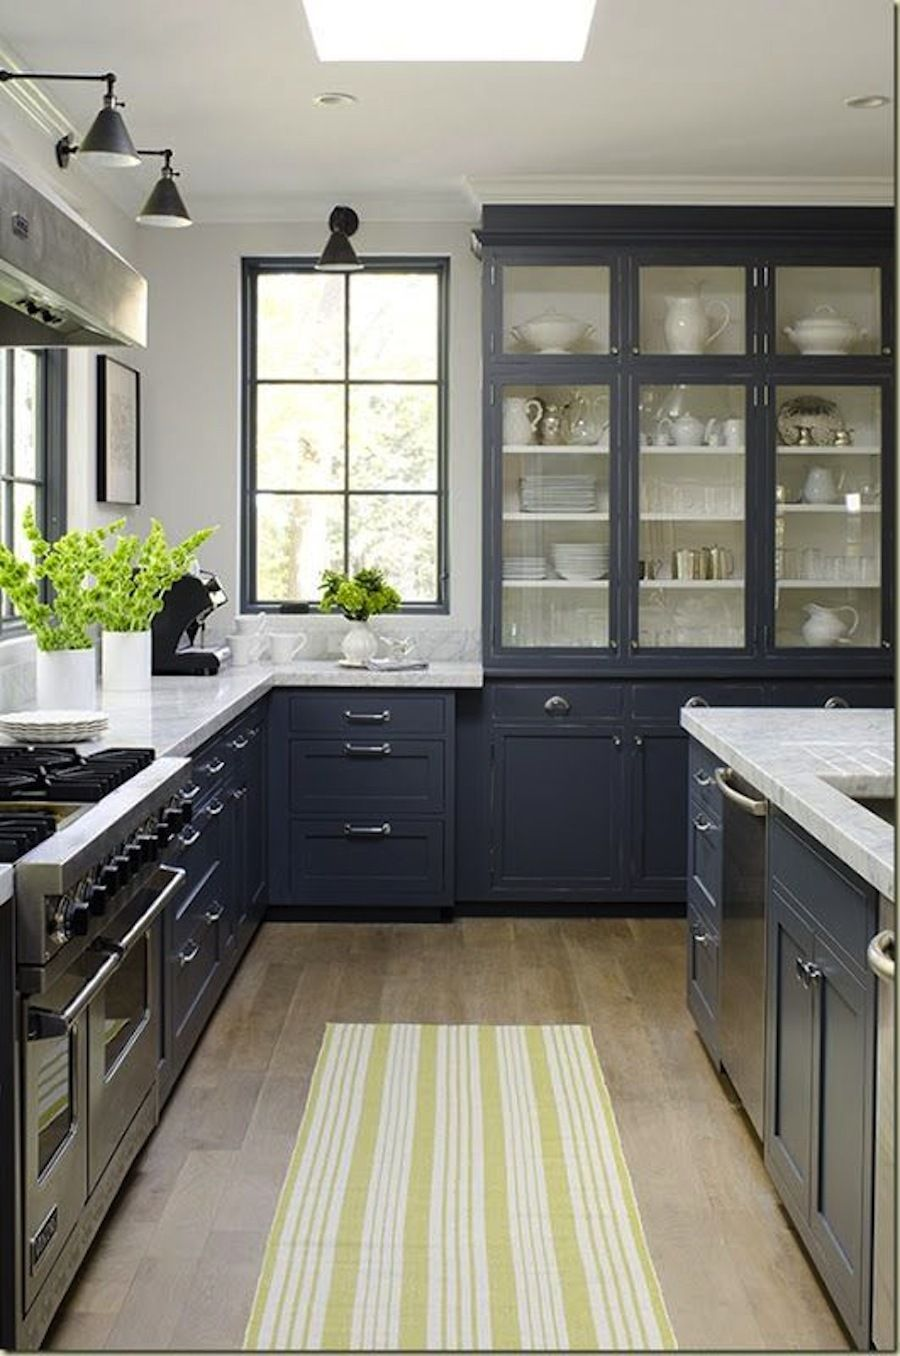 15 Stunning Gray Kitchens In 2020 Home Kitchens Kitchen Design